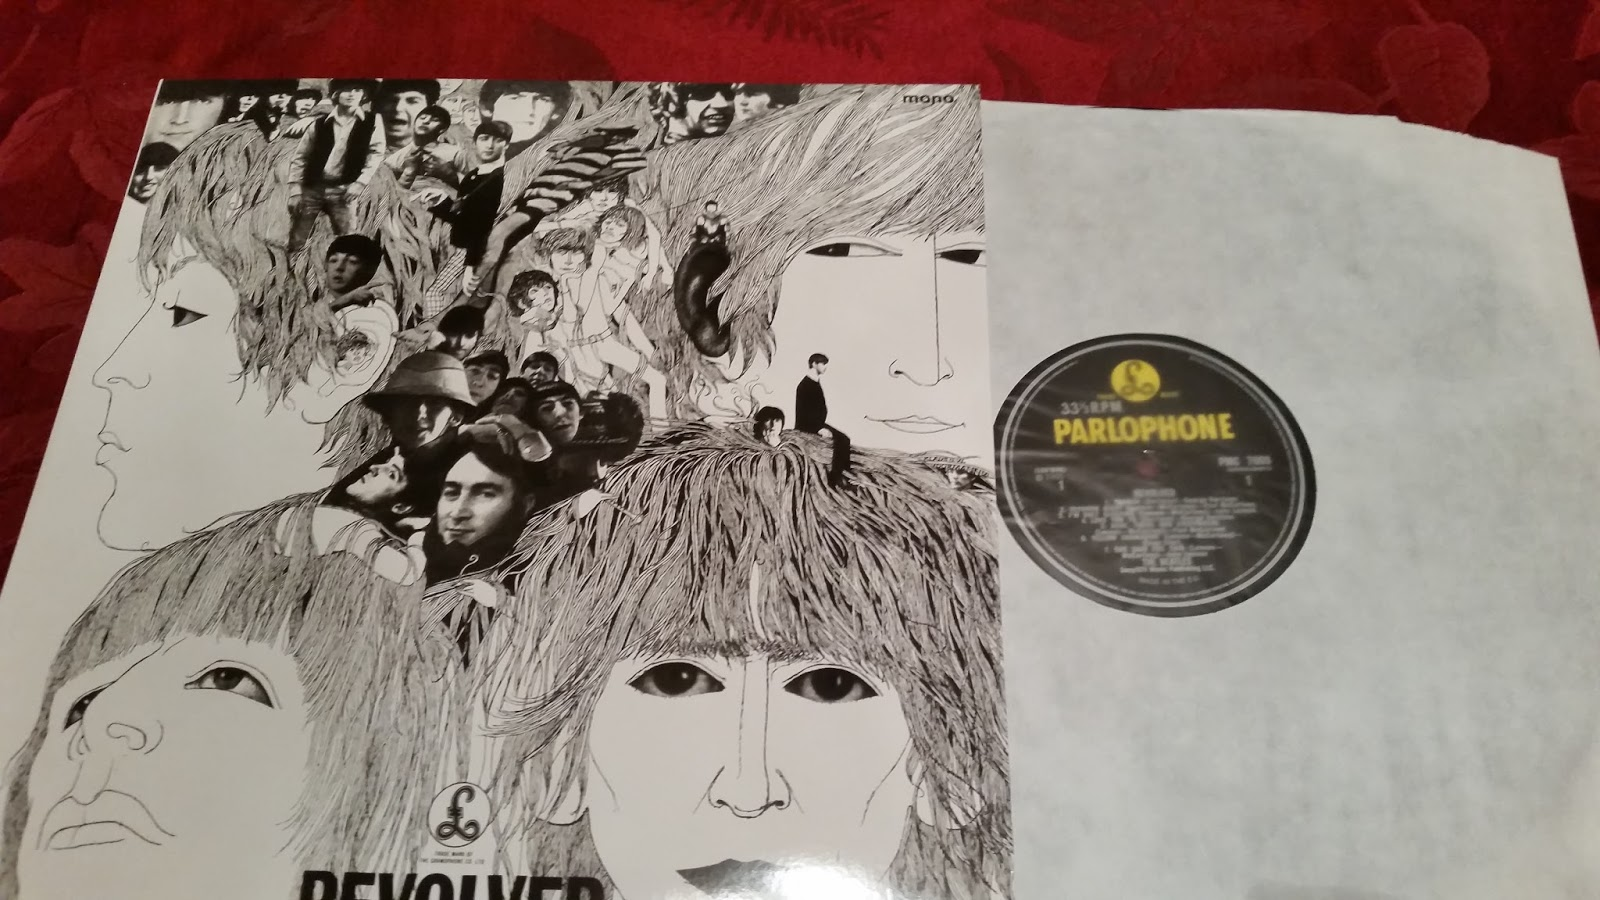 Lance's Blog: The Beatles Revolver in Mono for the 50th